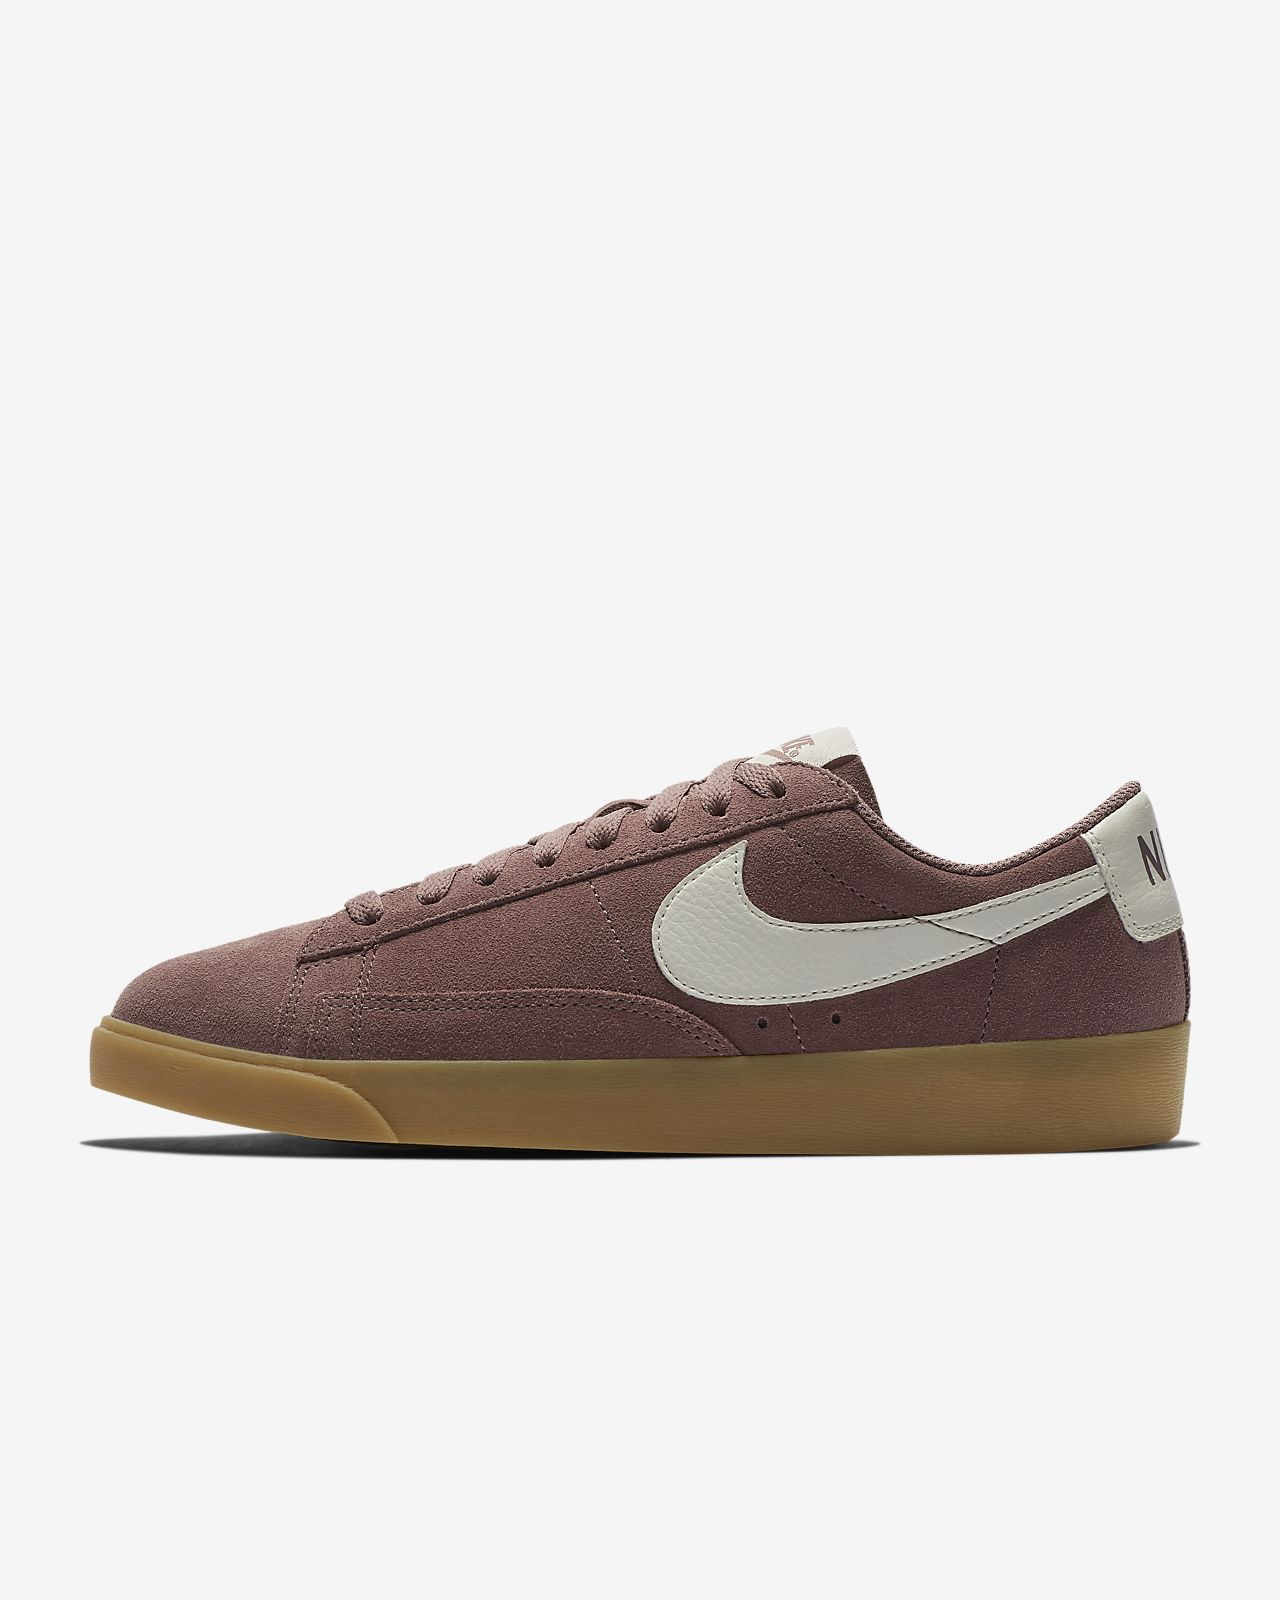 reputable site 26fa5 aa787 ... Chaussure Nike Blazer Low Suede pour Femme